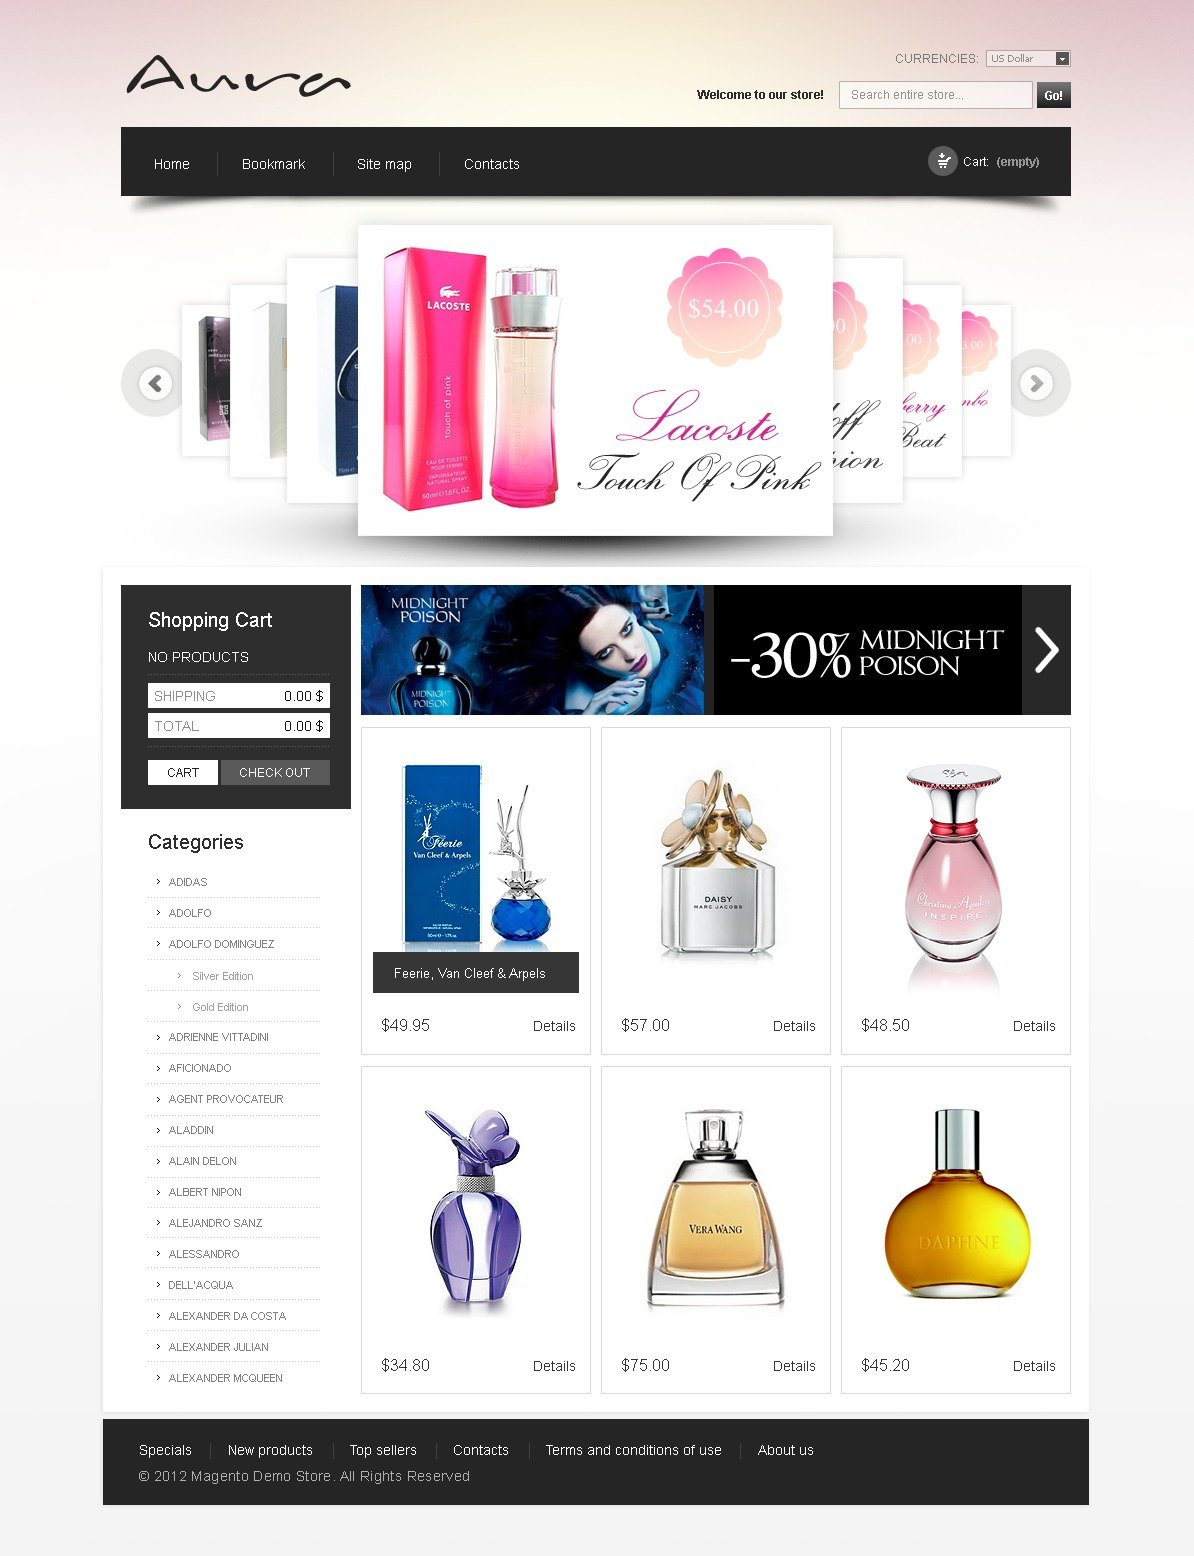 Website template #14061 printing store services custom website.